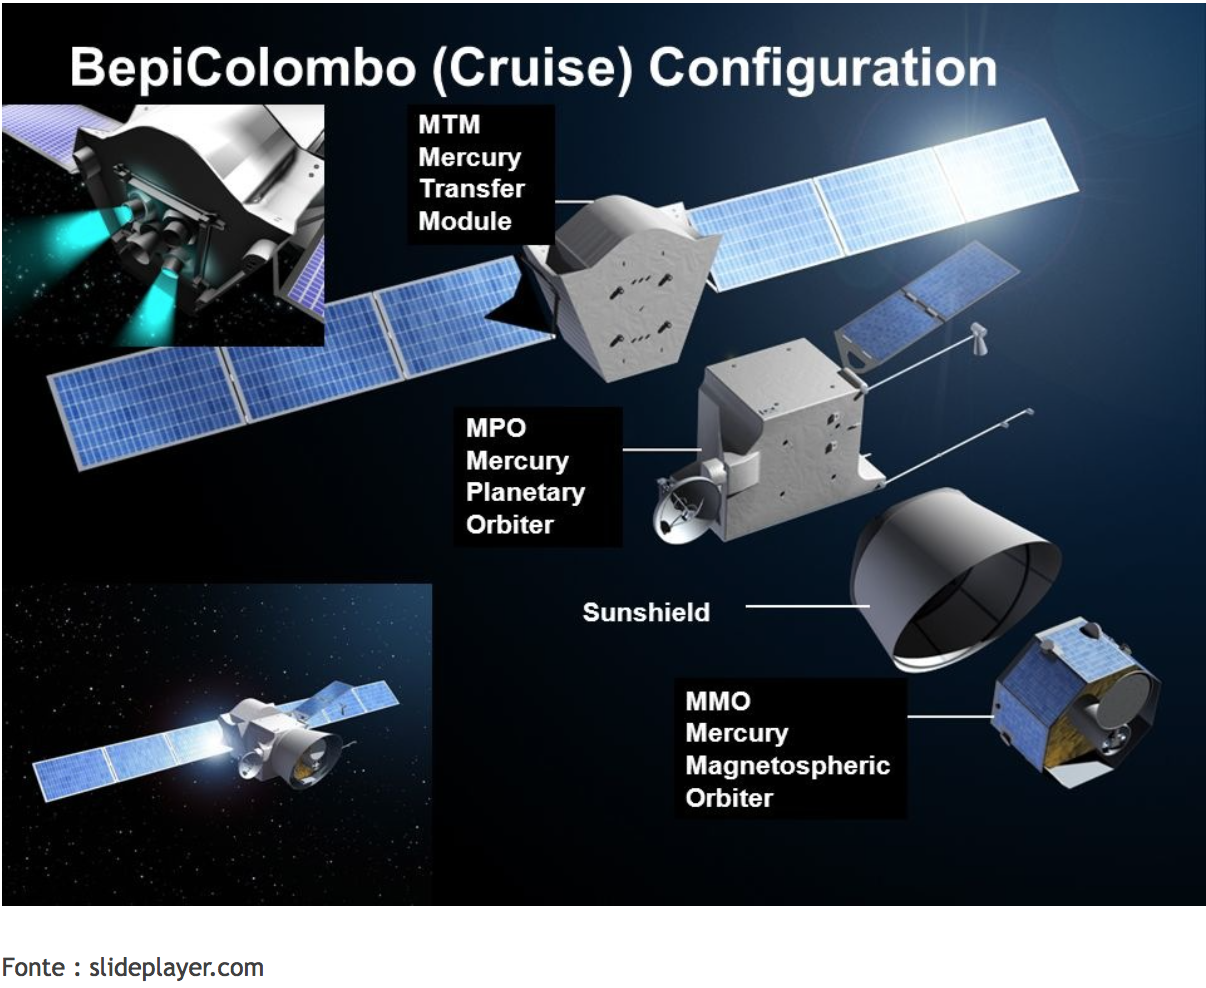 Missione BepiColombo